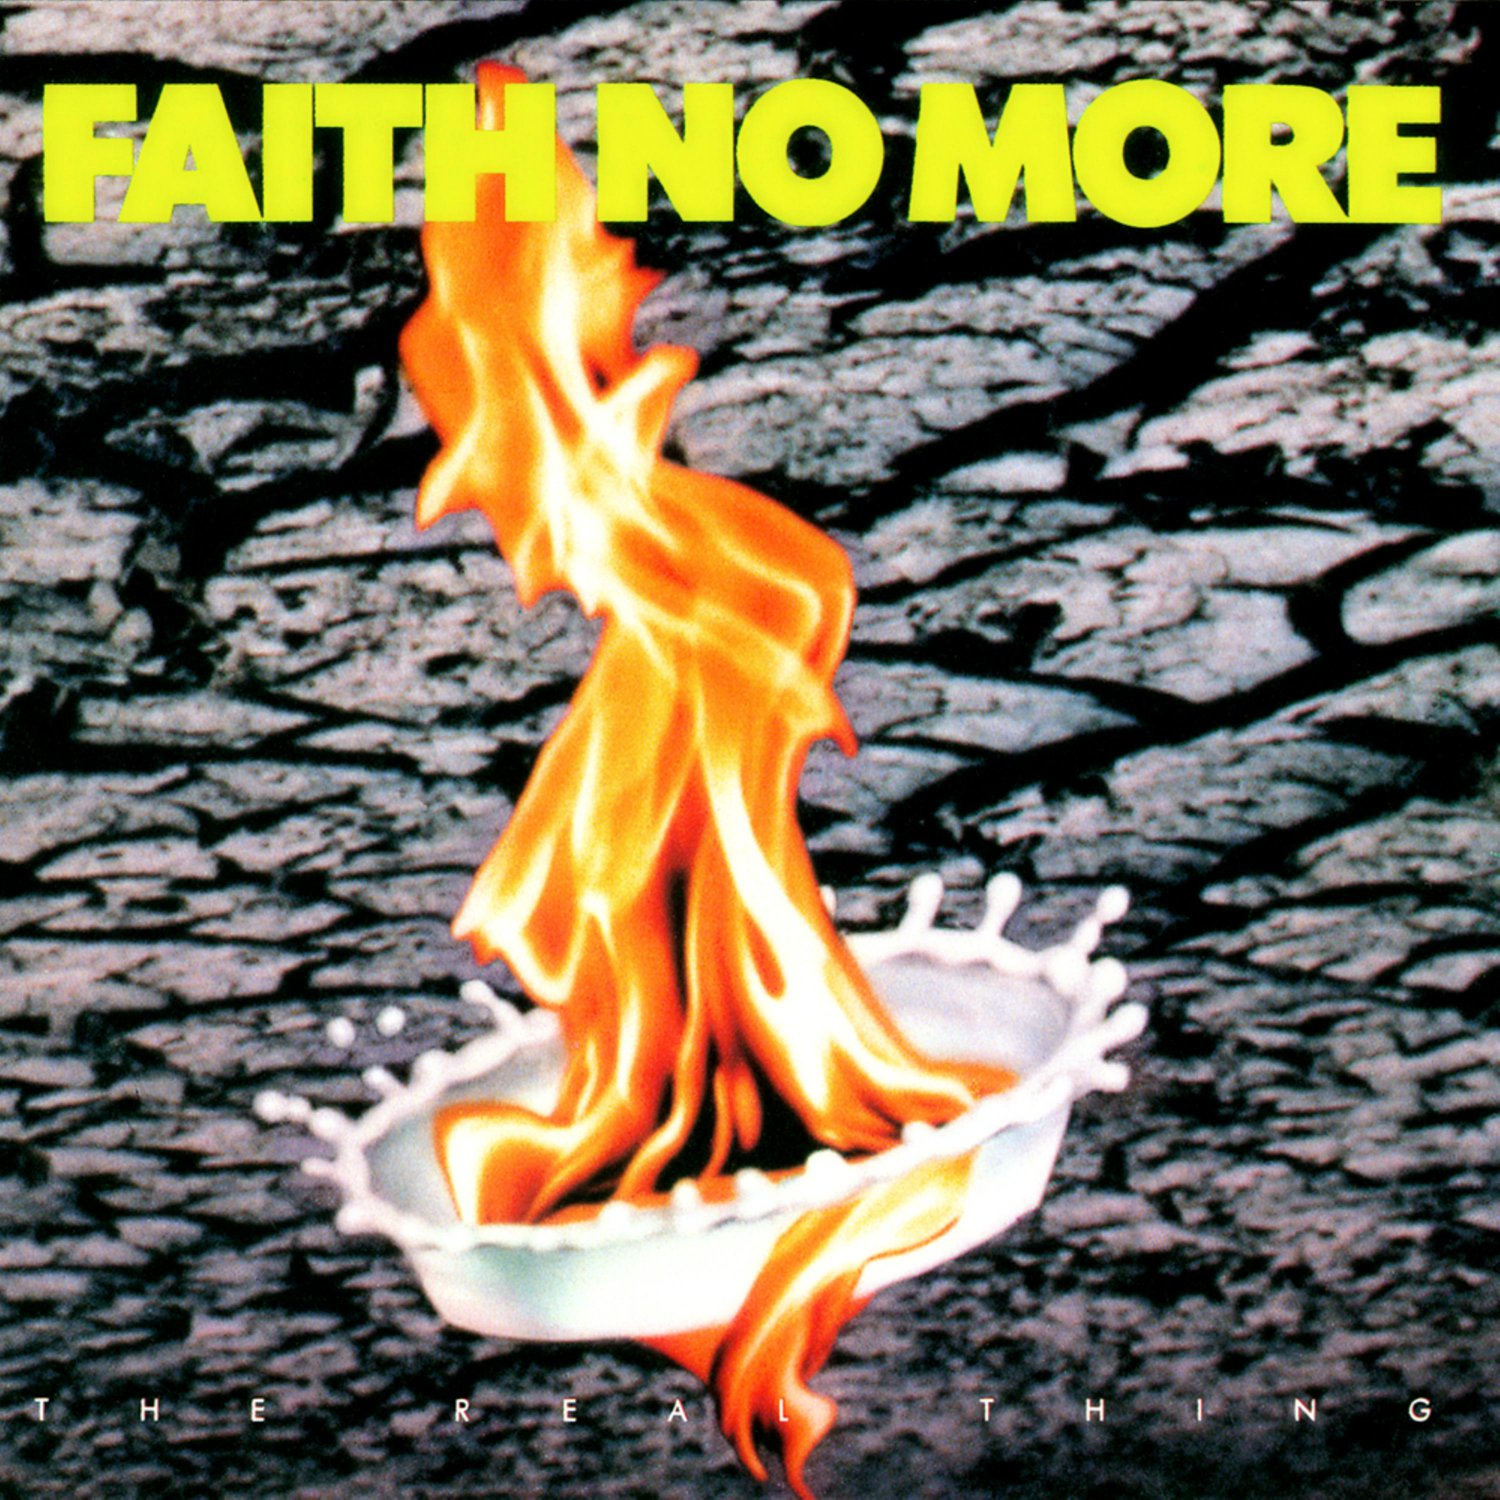 FAITH NO MORE The Real Thing BANNER Huge 4X4 Ft Fabric Poster Tapestry Flag Print album cover art